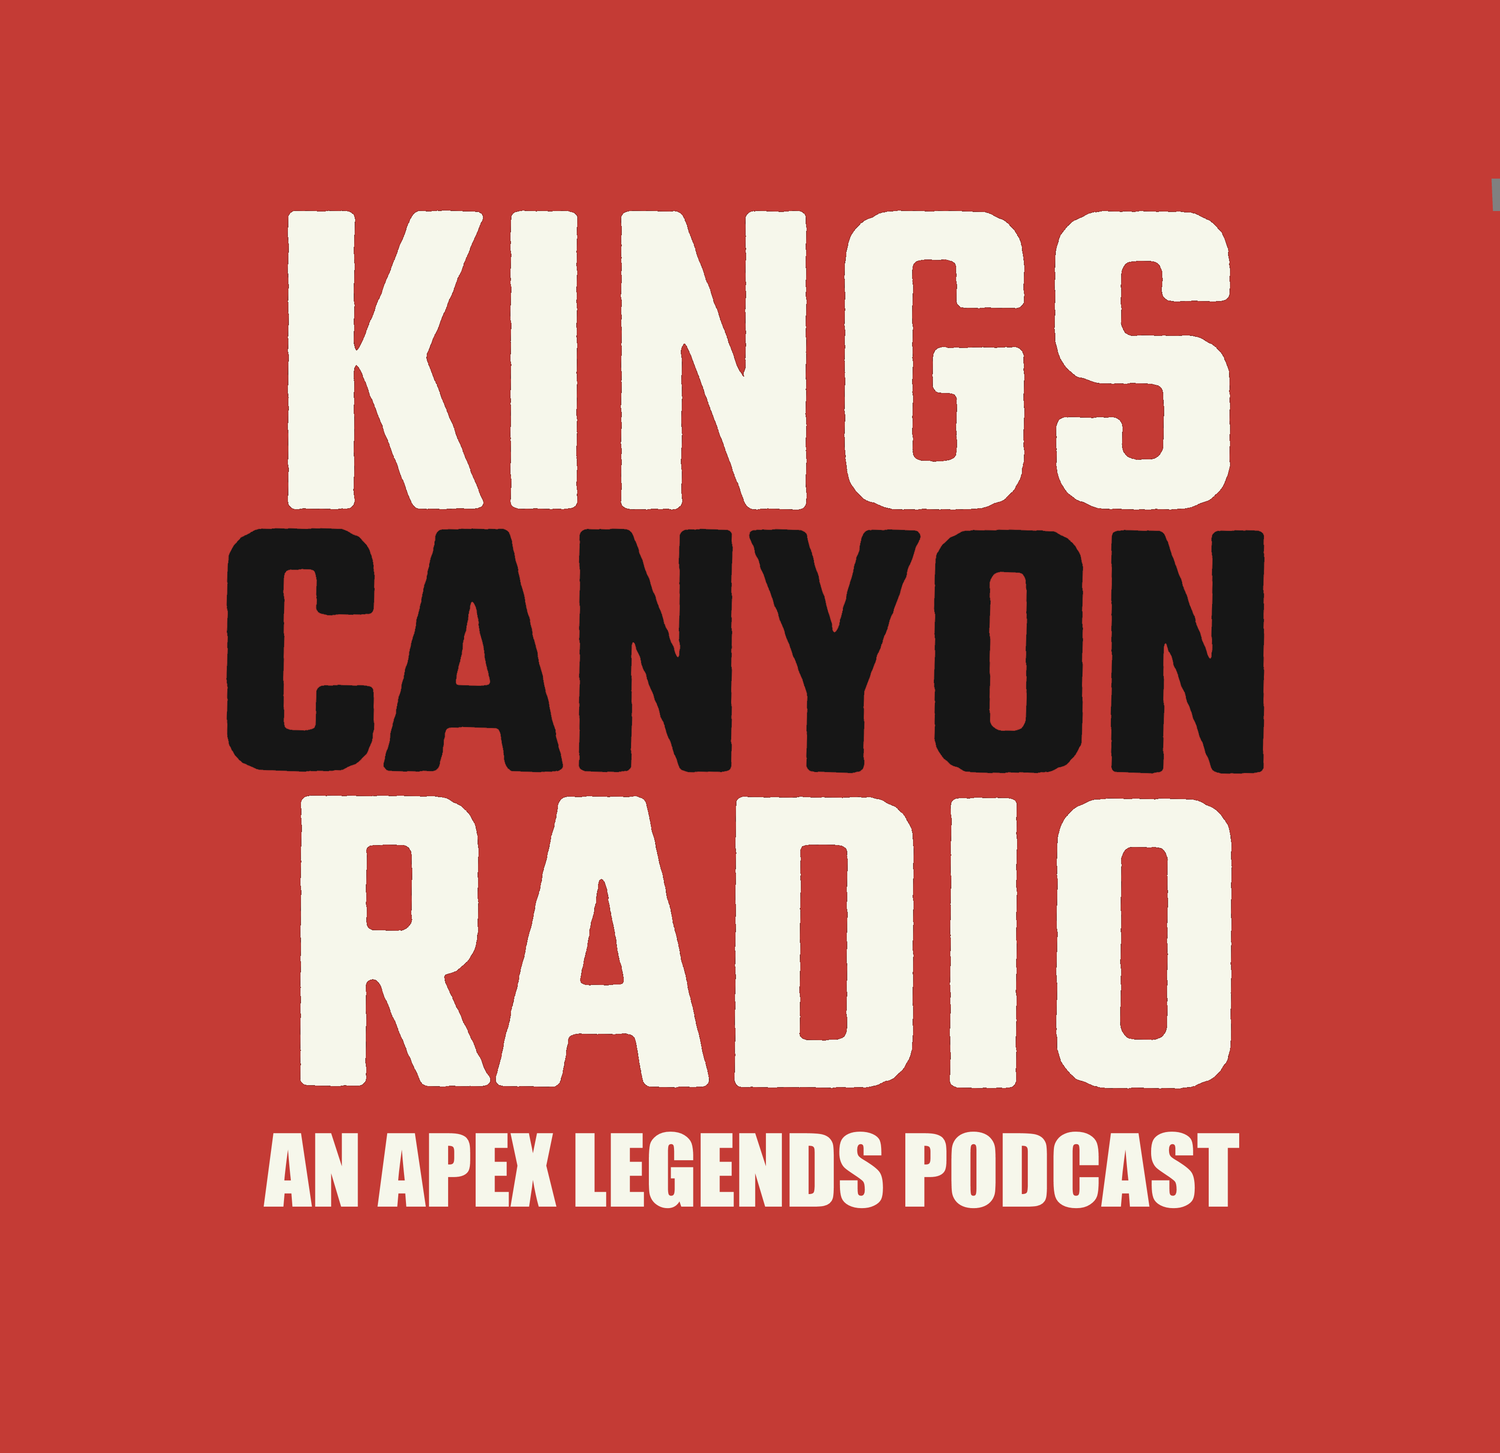 Kings Canyon Radio | Apex Legends Podcast